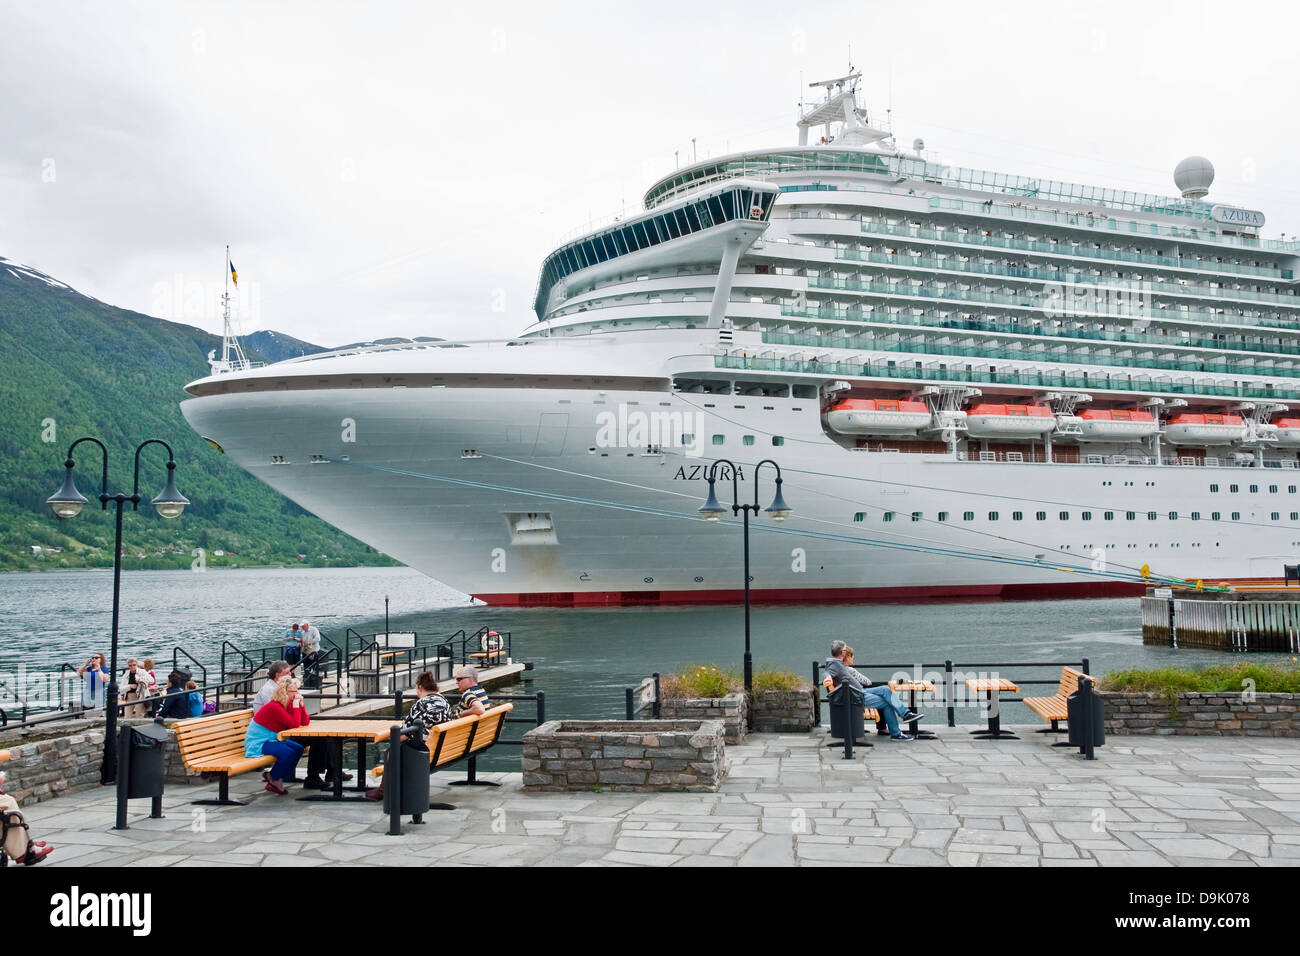 British cruise liner Azura visiting the town of Andalsnes, Norway - Stock Image